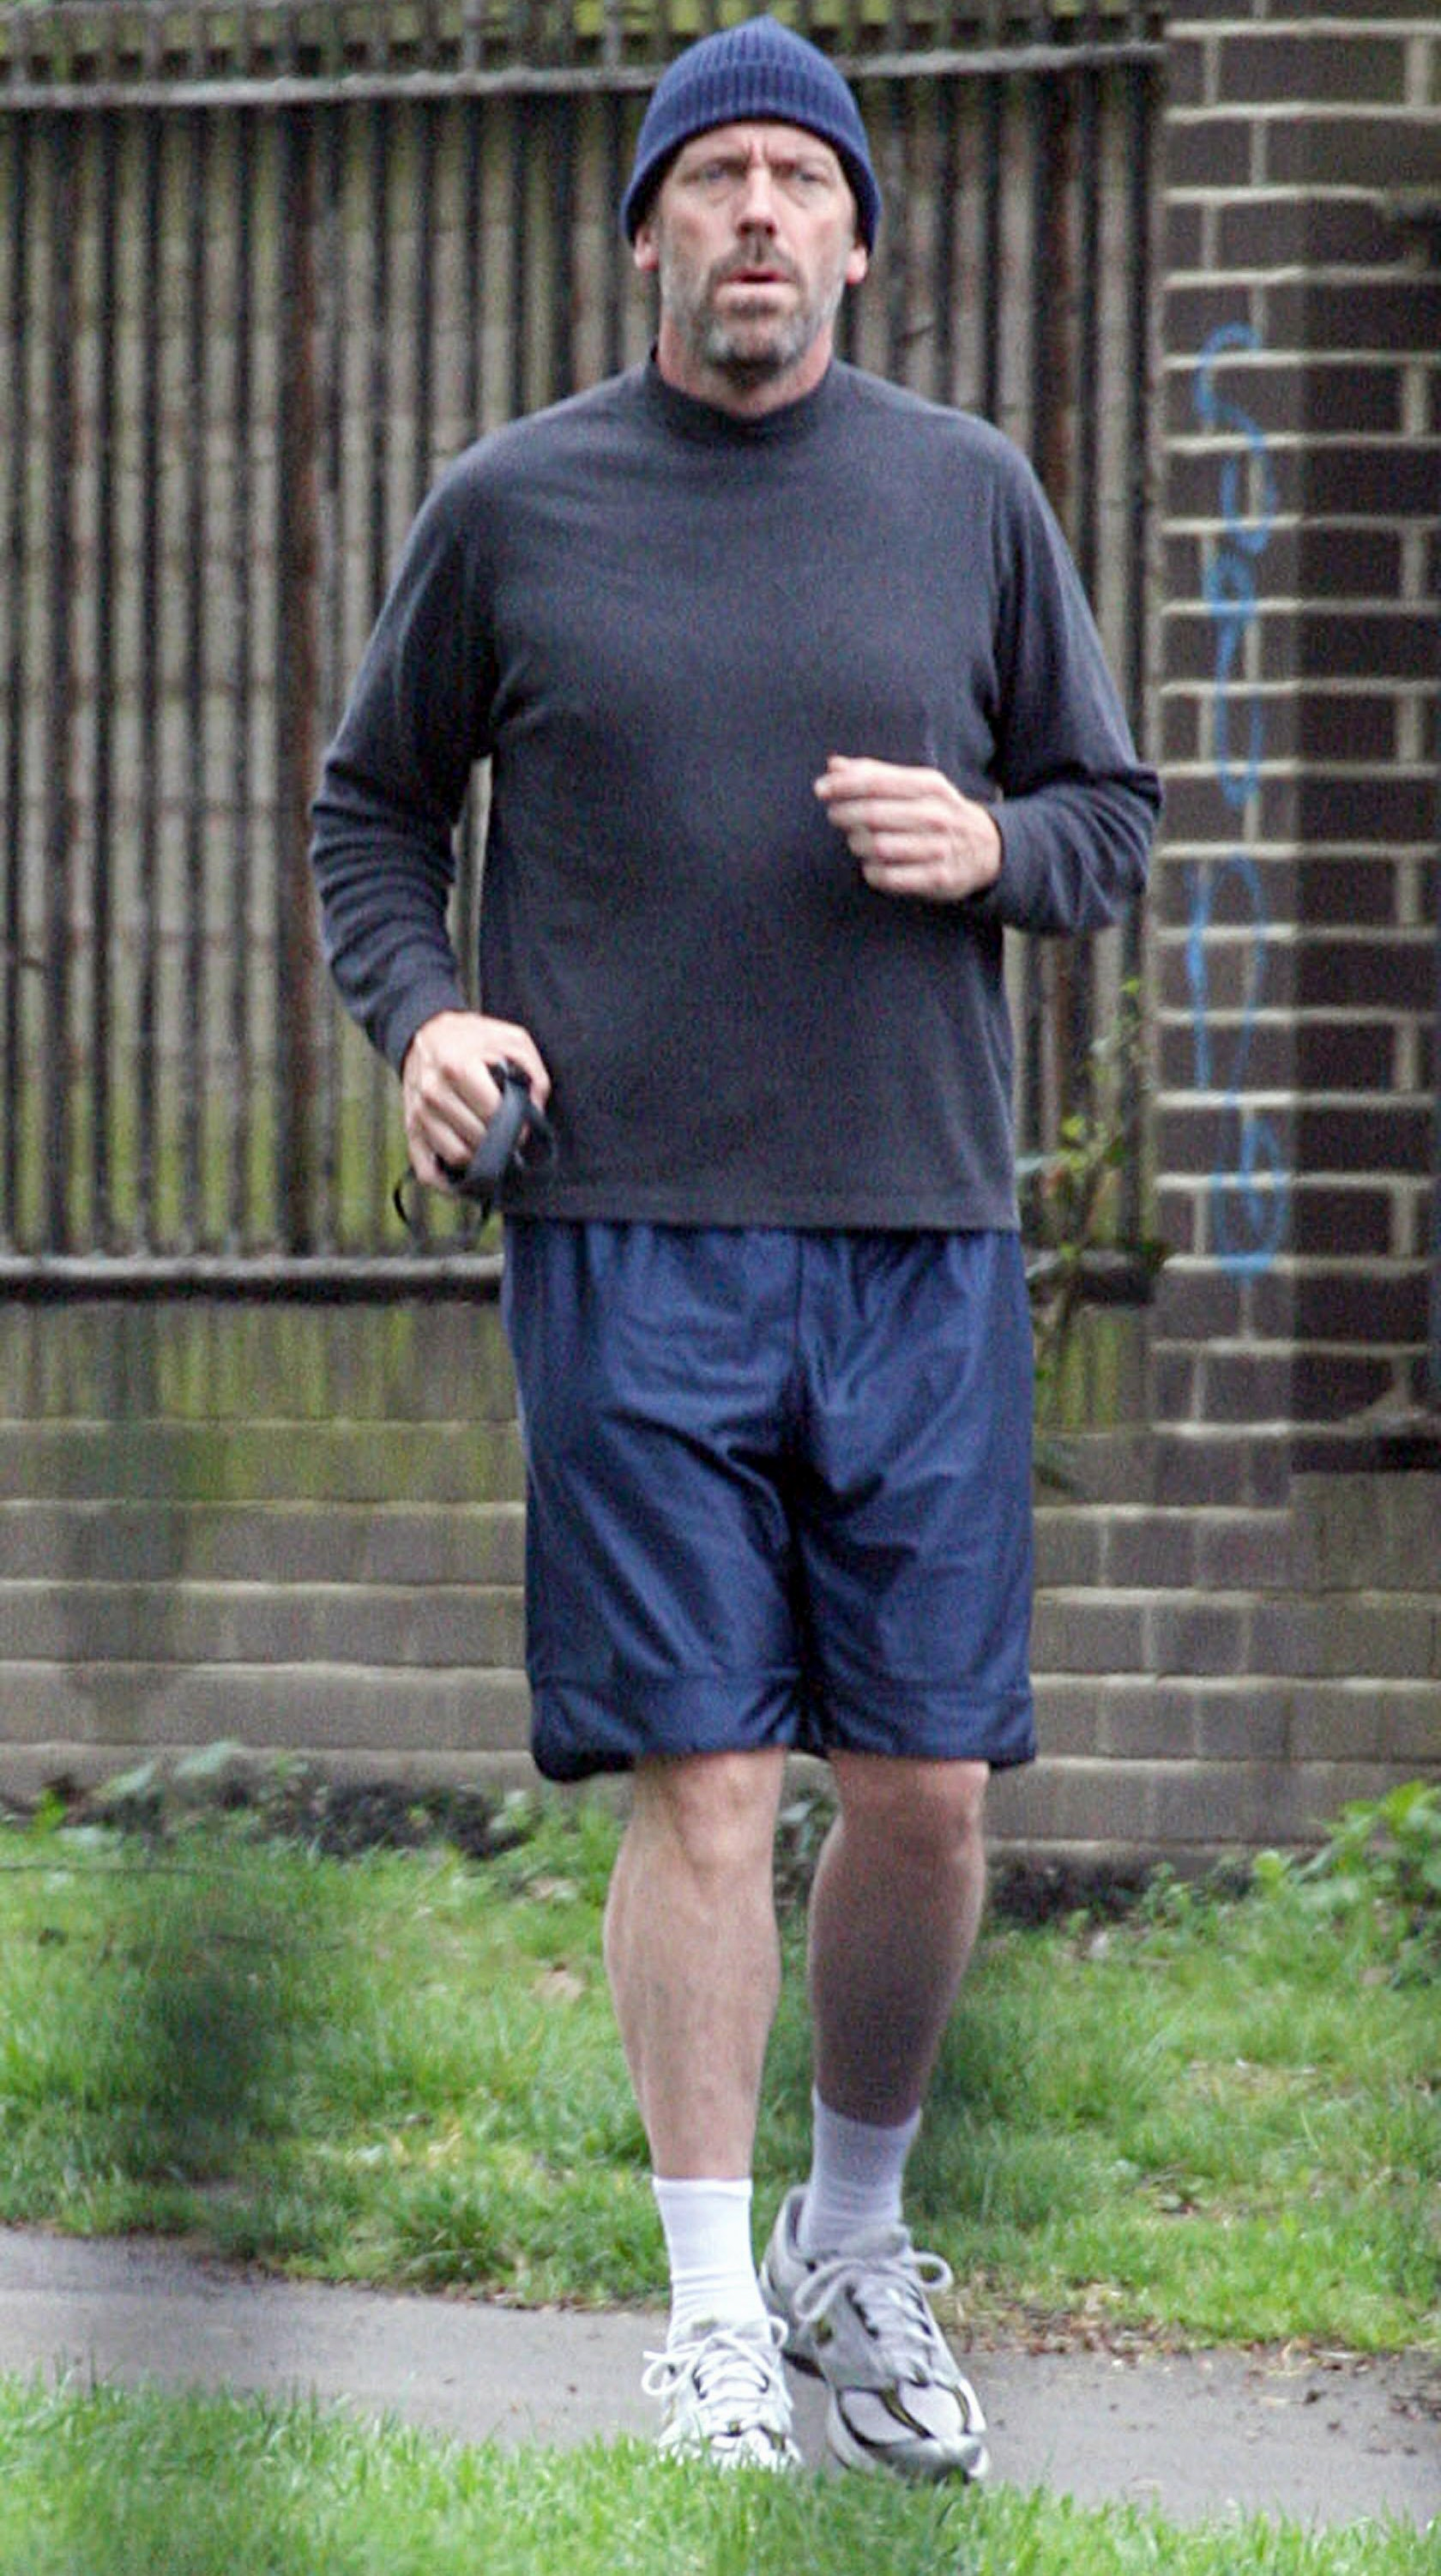 64050_Hugh_Laurie_jogging_in_London_with_his_dog2_April19-05_122_1140lo.jpg